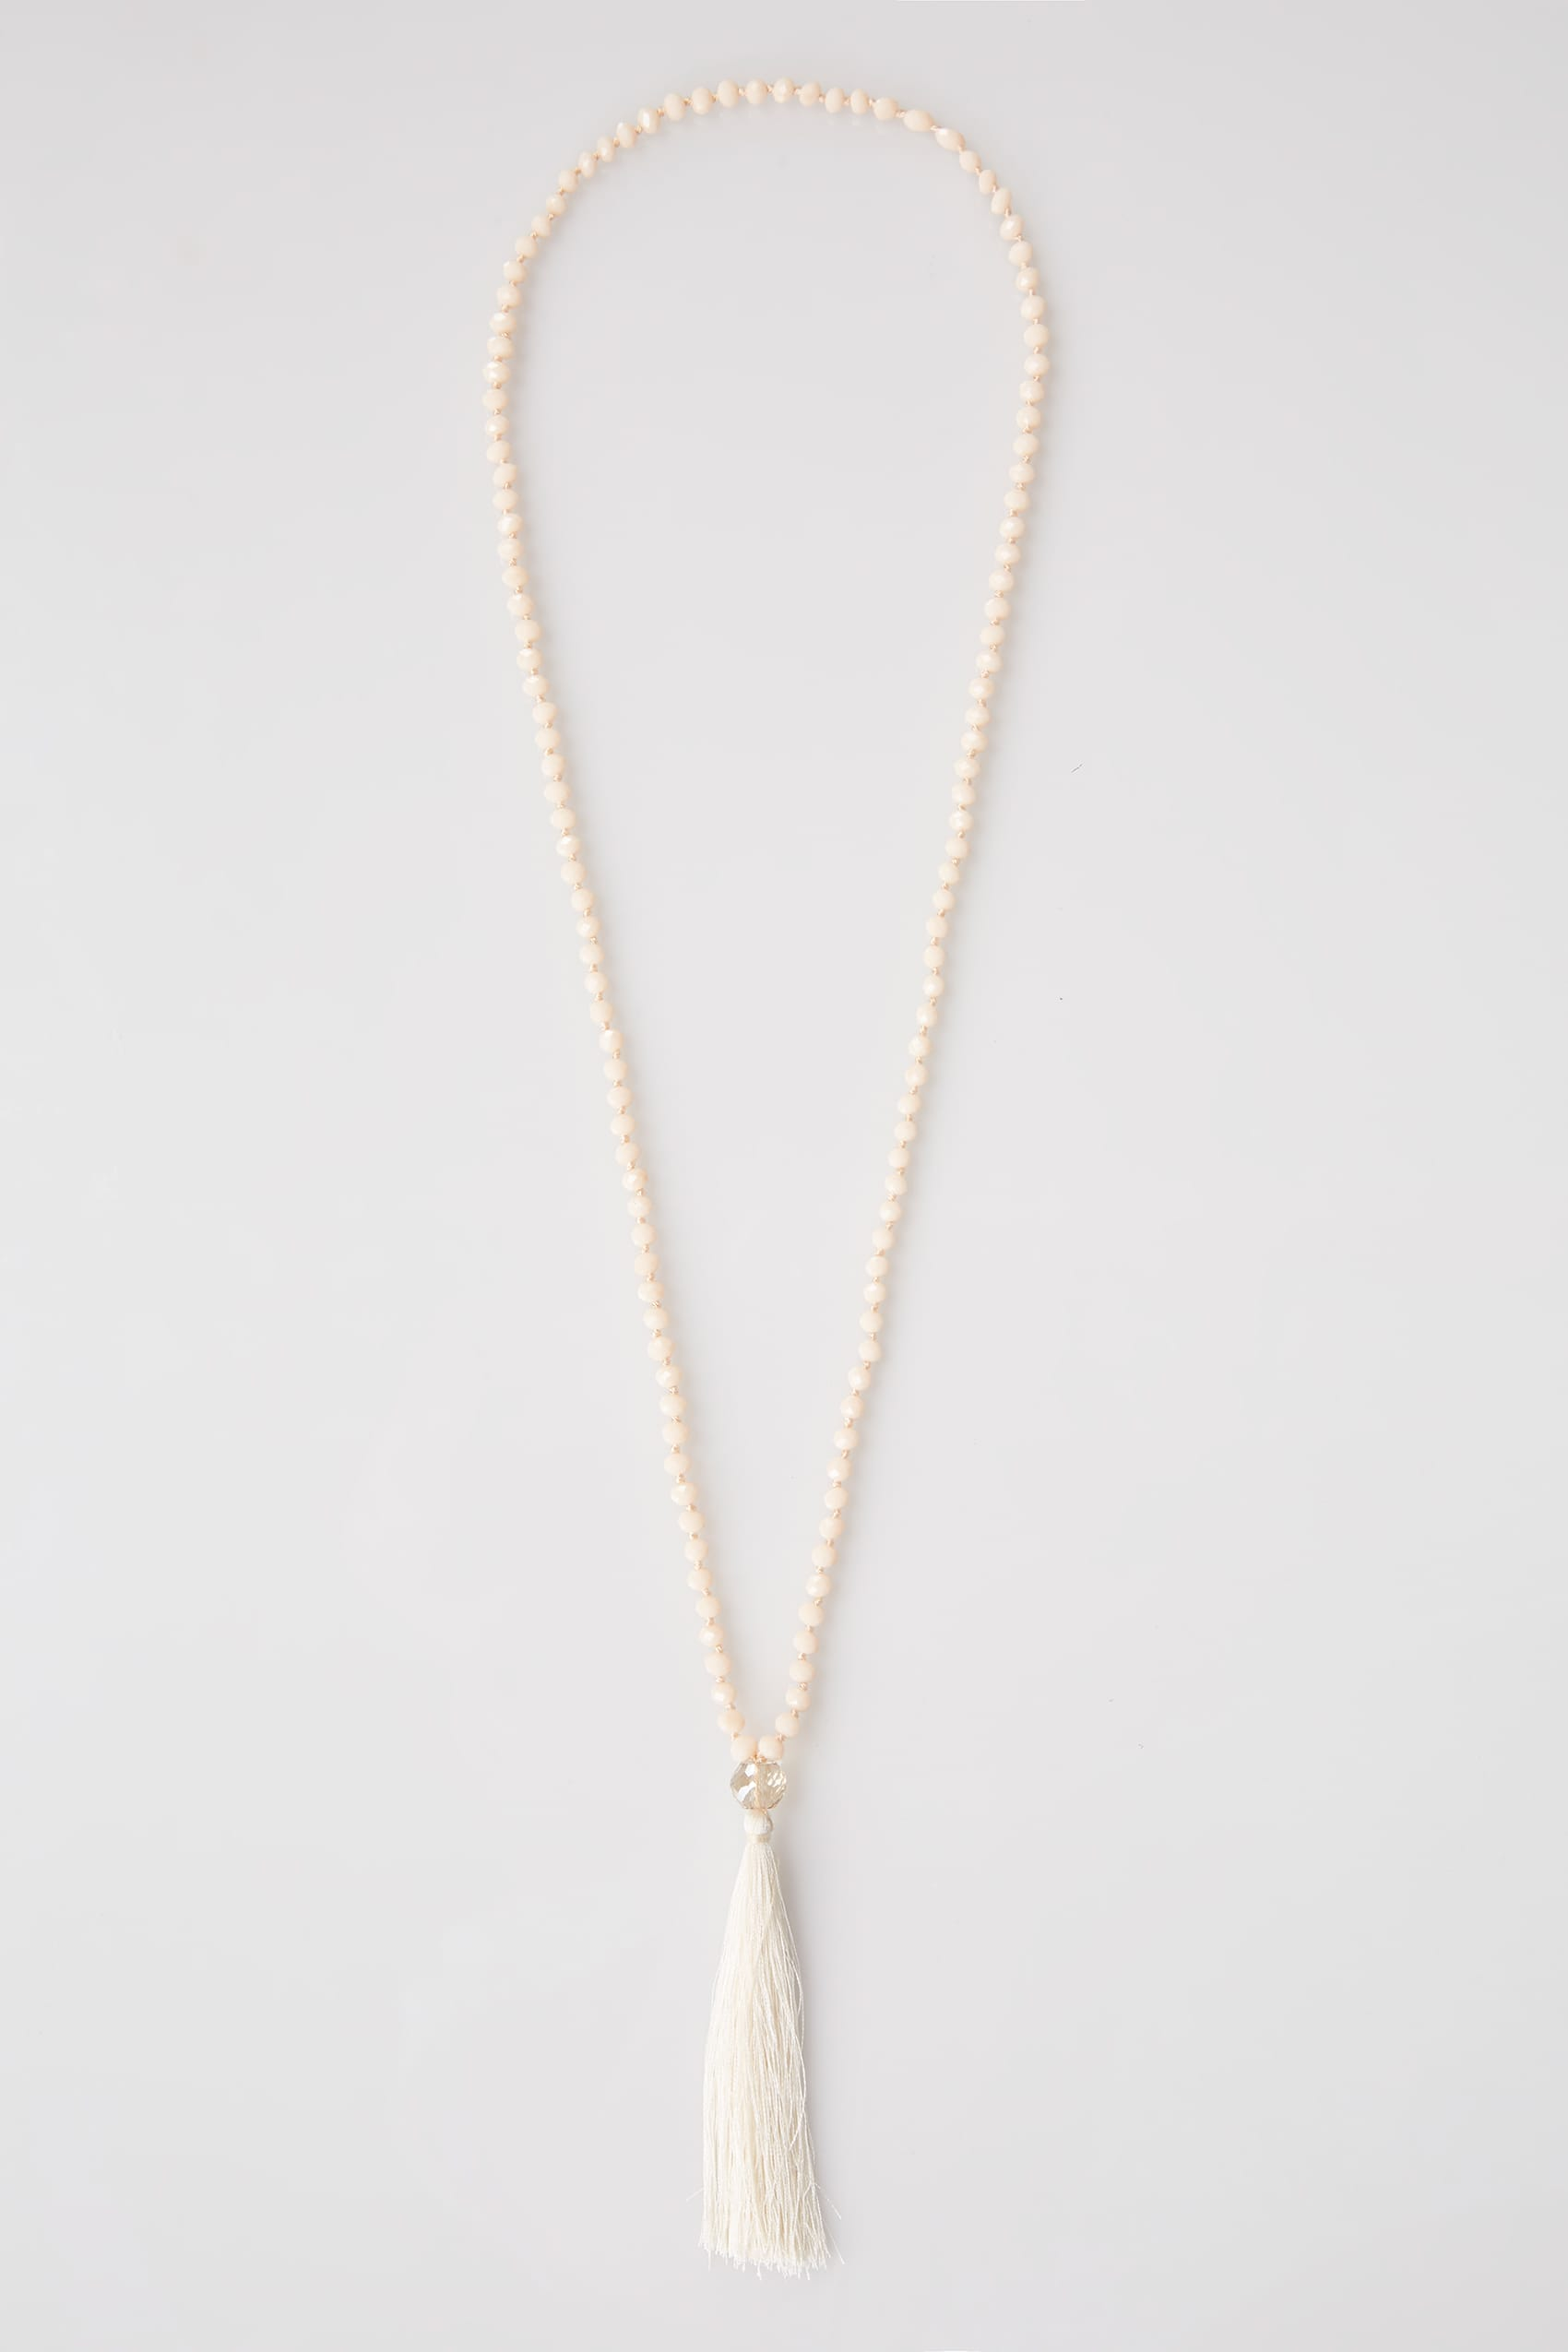 Necklace with pink tassels Nude Collection